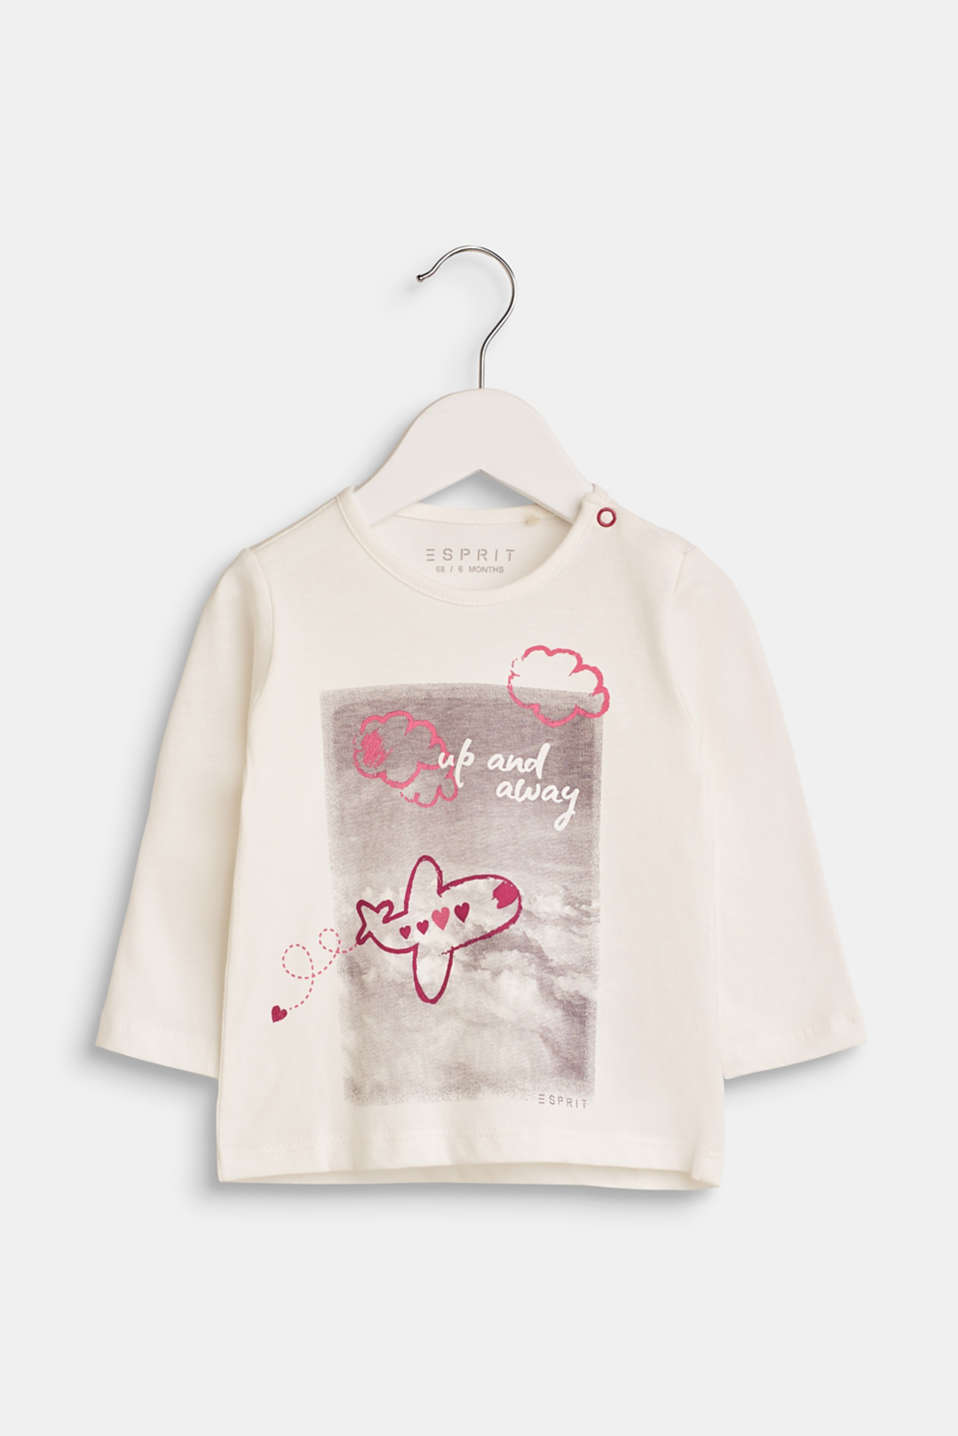 Esprit - Long sleeve top with an aeroplane print, 100% cotton